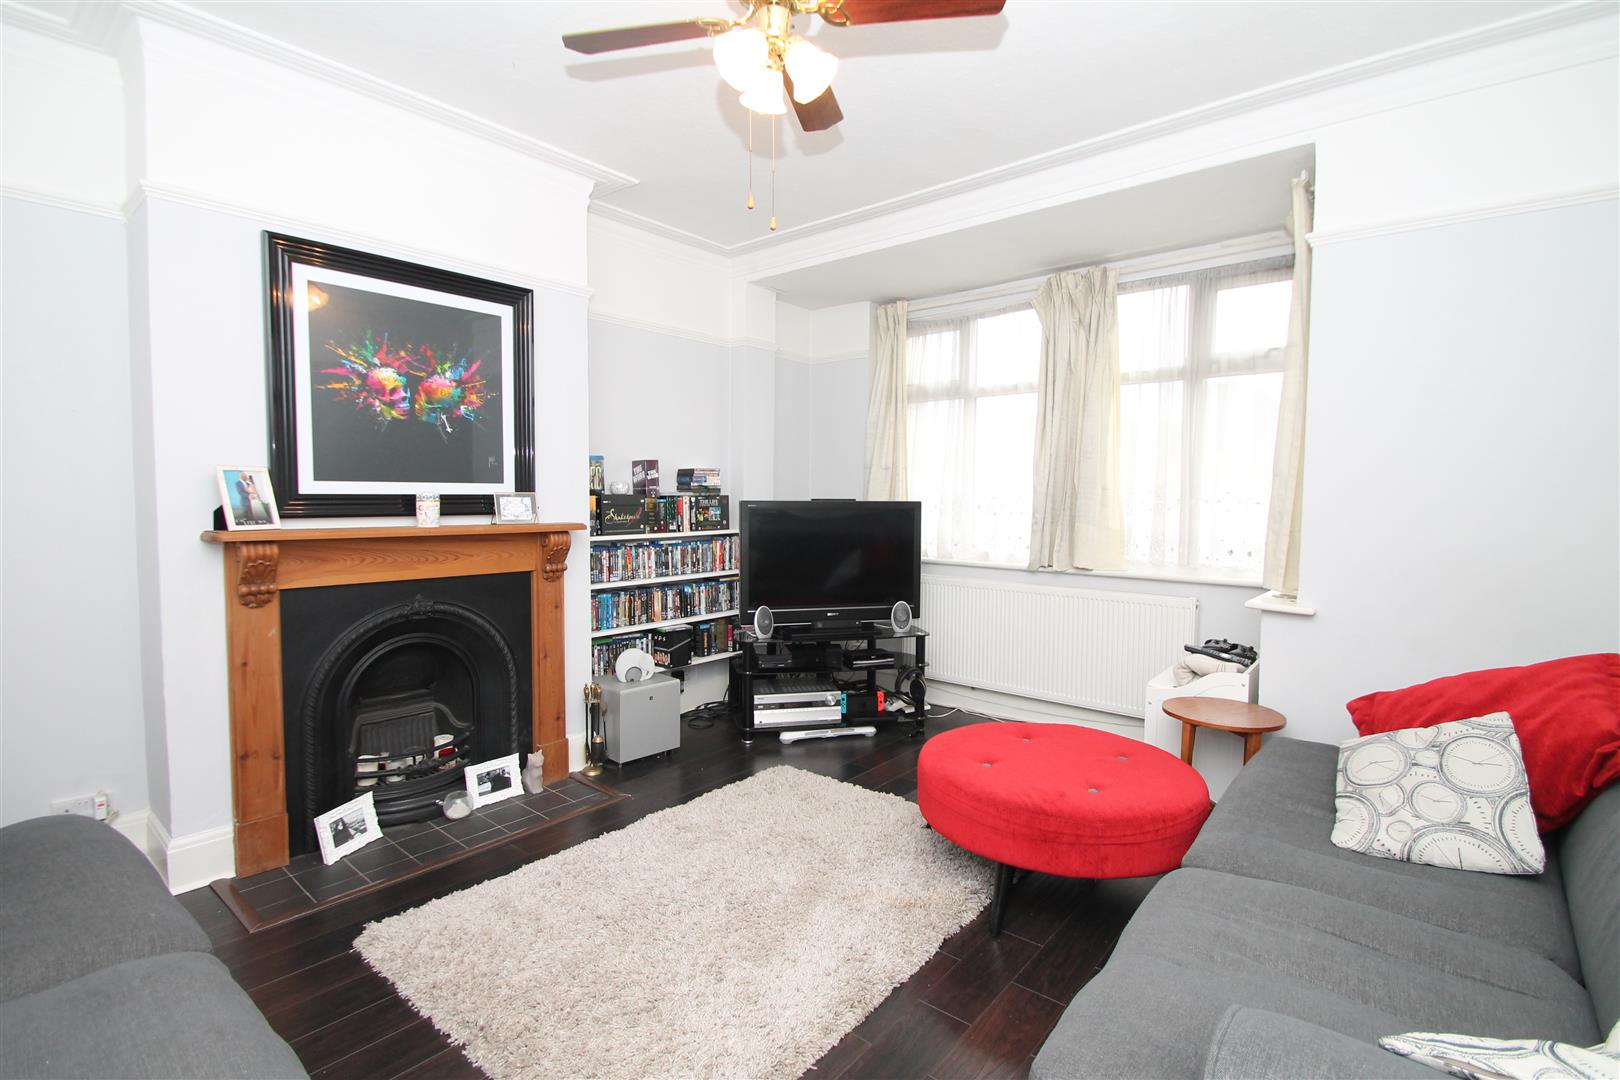 3 Bedrooms Terraced House for sale in North Circular Road, London N13